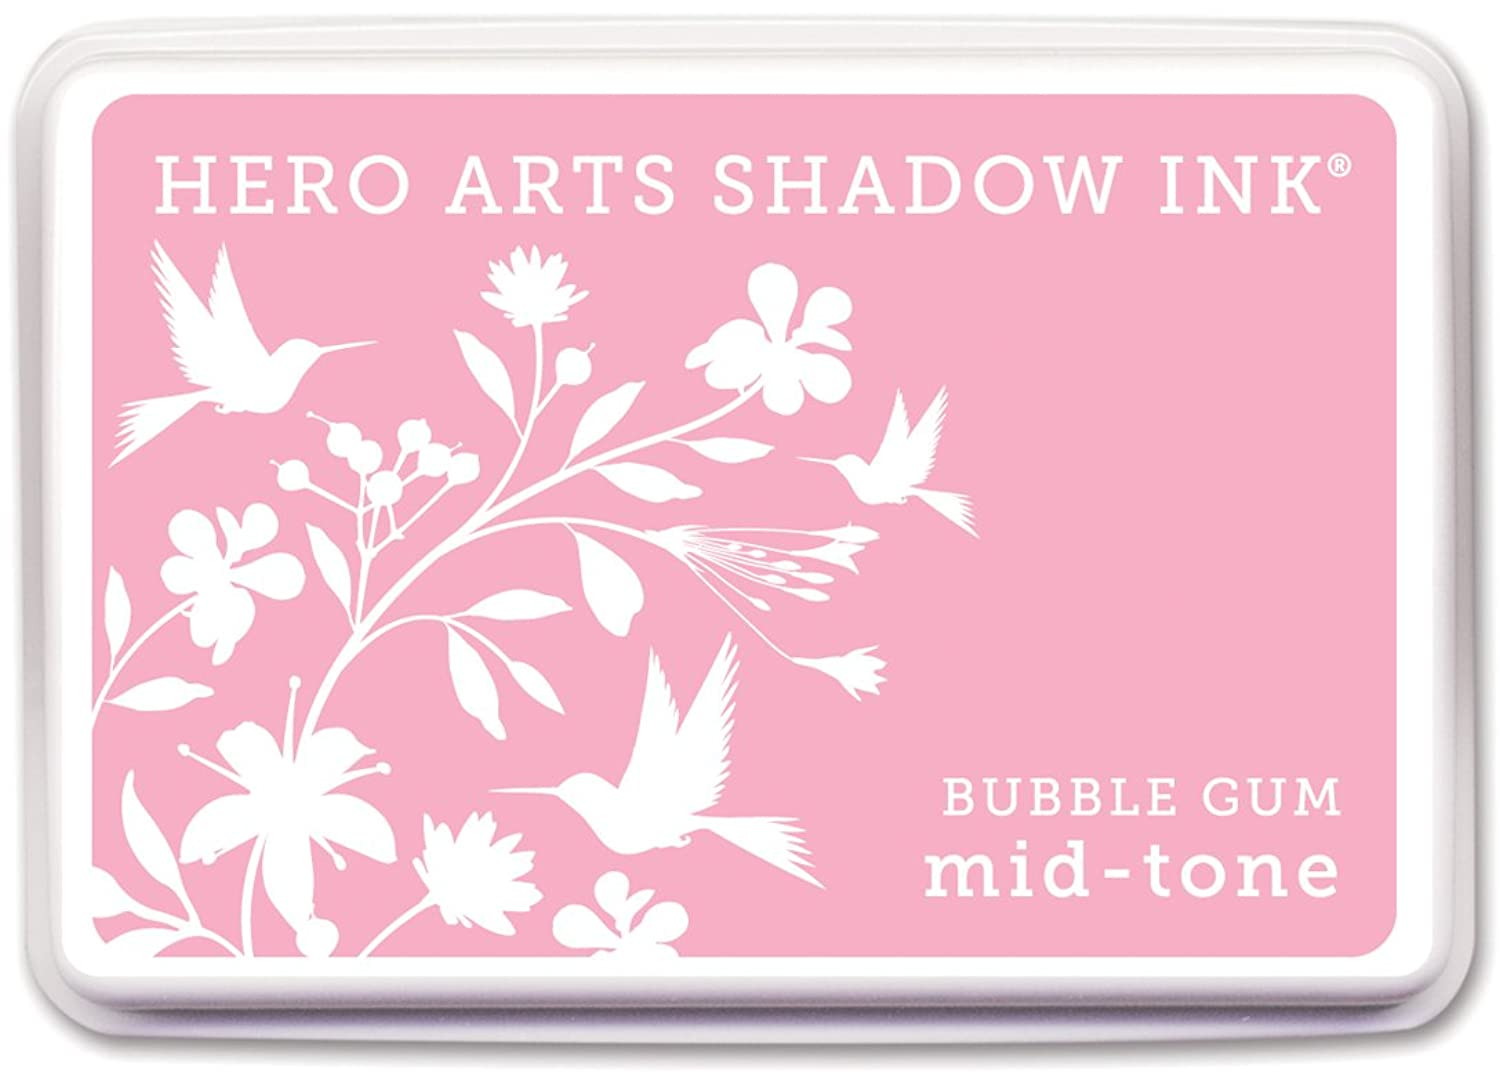 Hero Arts Rubber Stamps AF208 Shadow Ink Mid-Tone, Bubble Gum